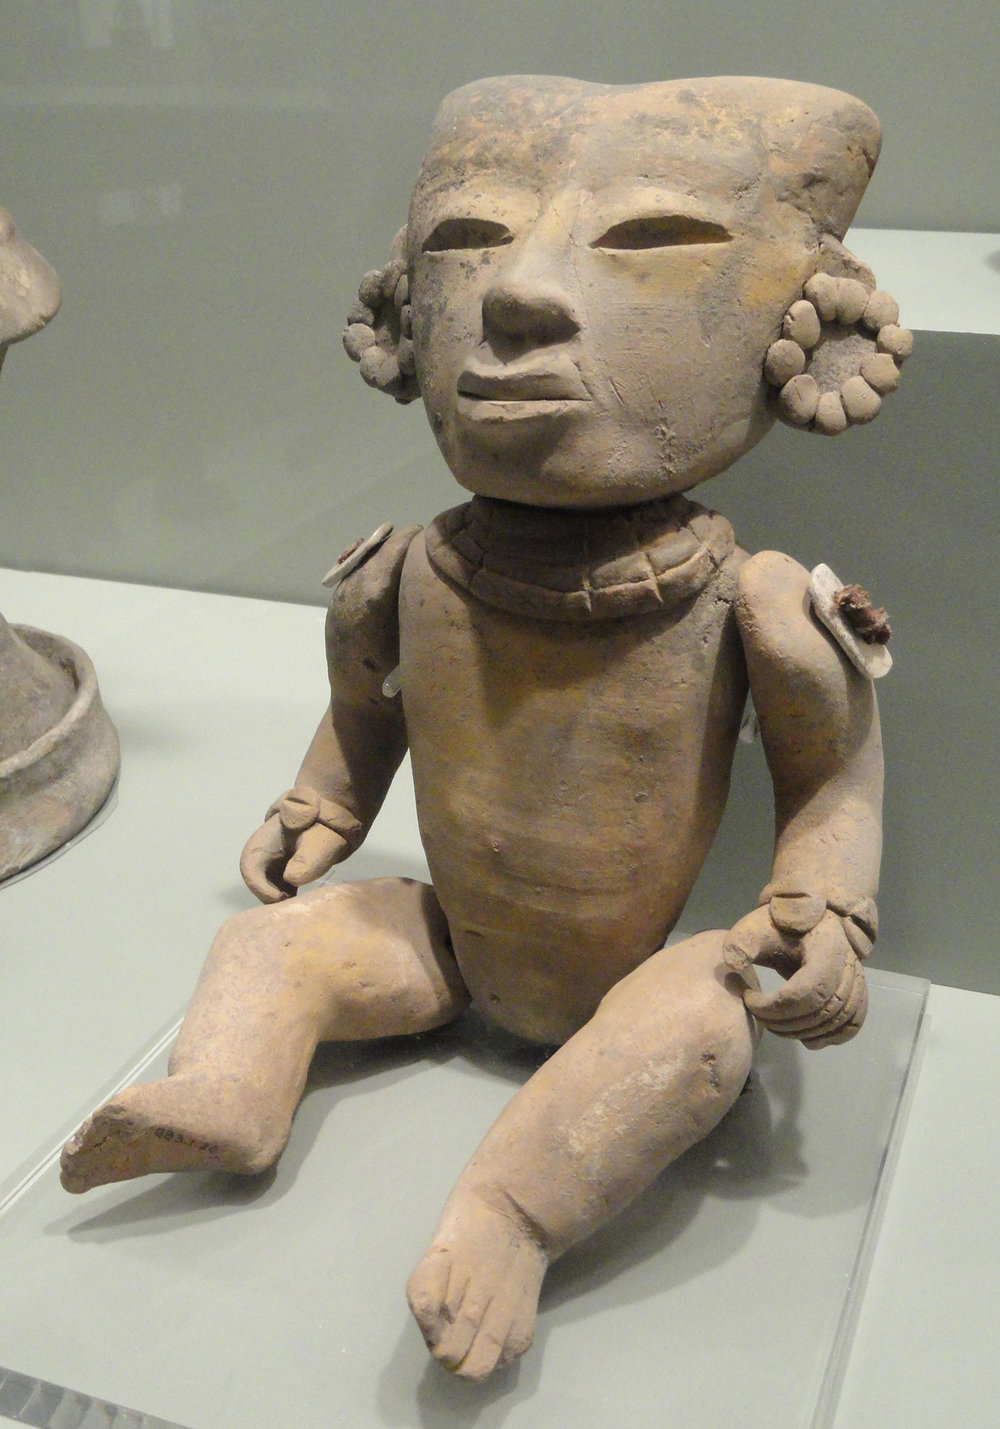 Human figure from Teotihuacán, 150-300 AD, now in Gardiner Museum, Toronto:  commons.wikimedia.org .